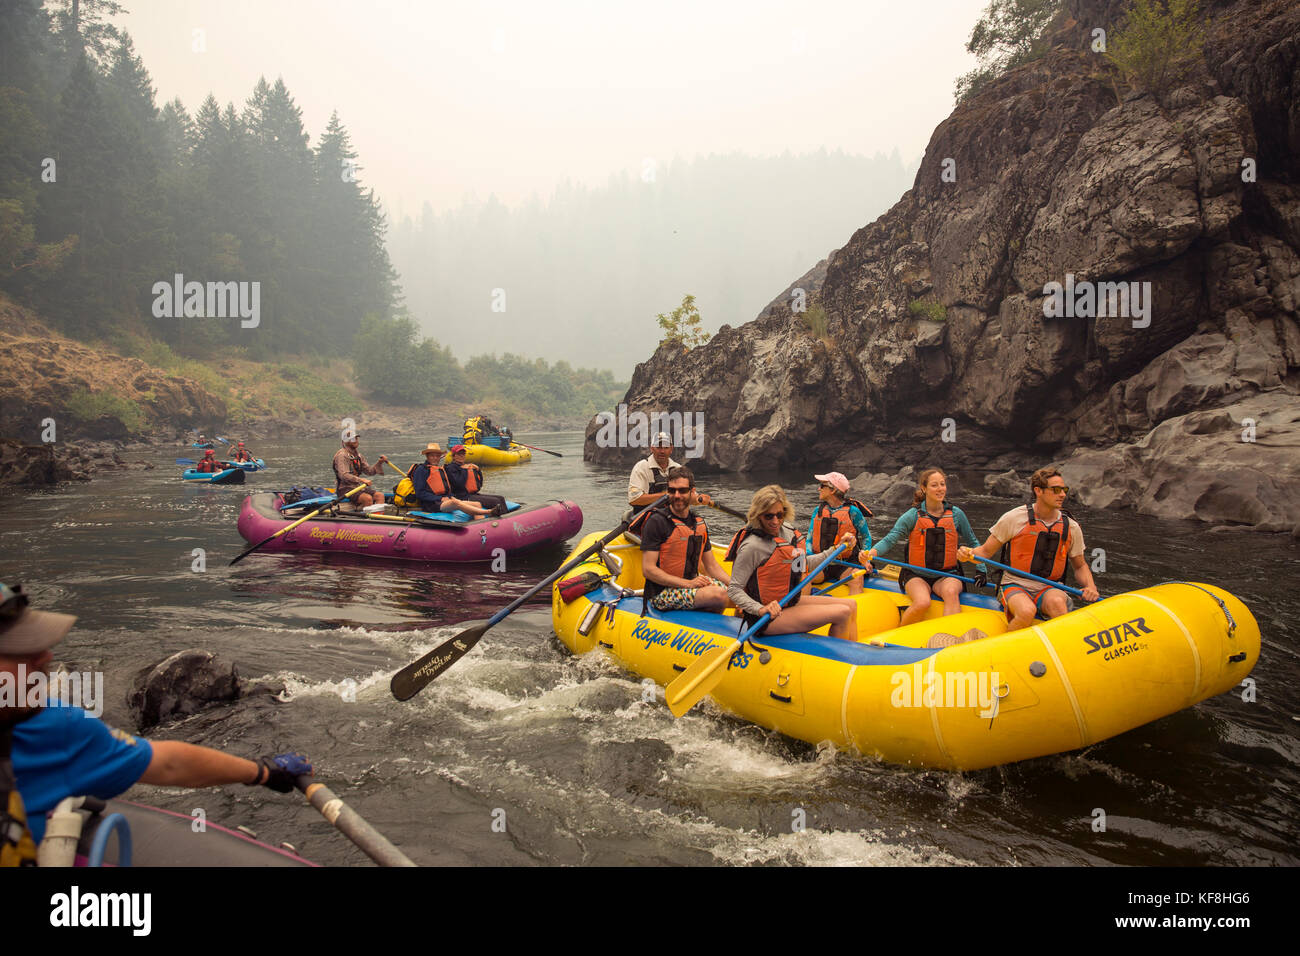 ROGUE RIVER WHITEWATER RAFTING & FISHING TRIPS